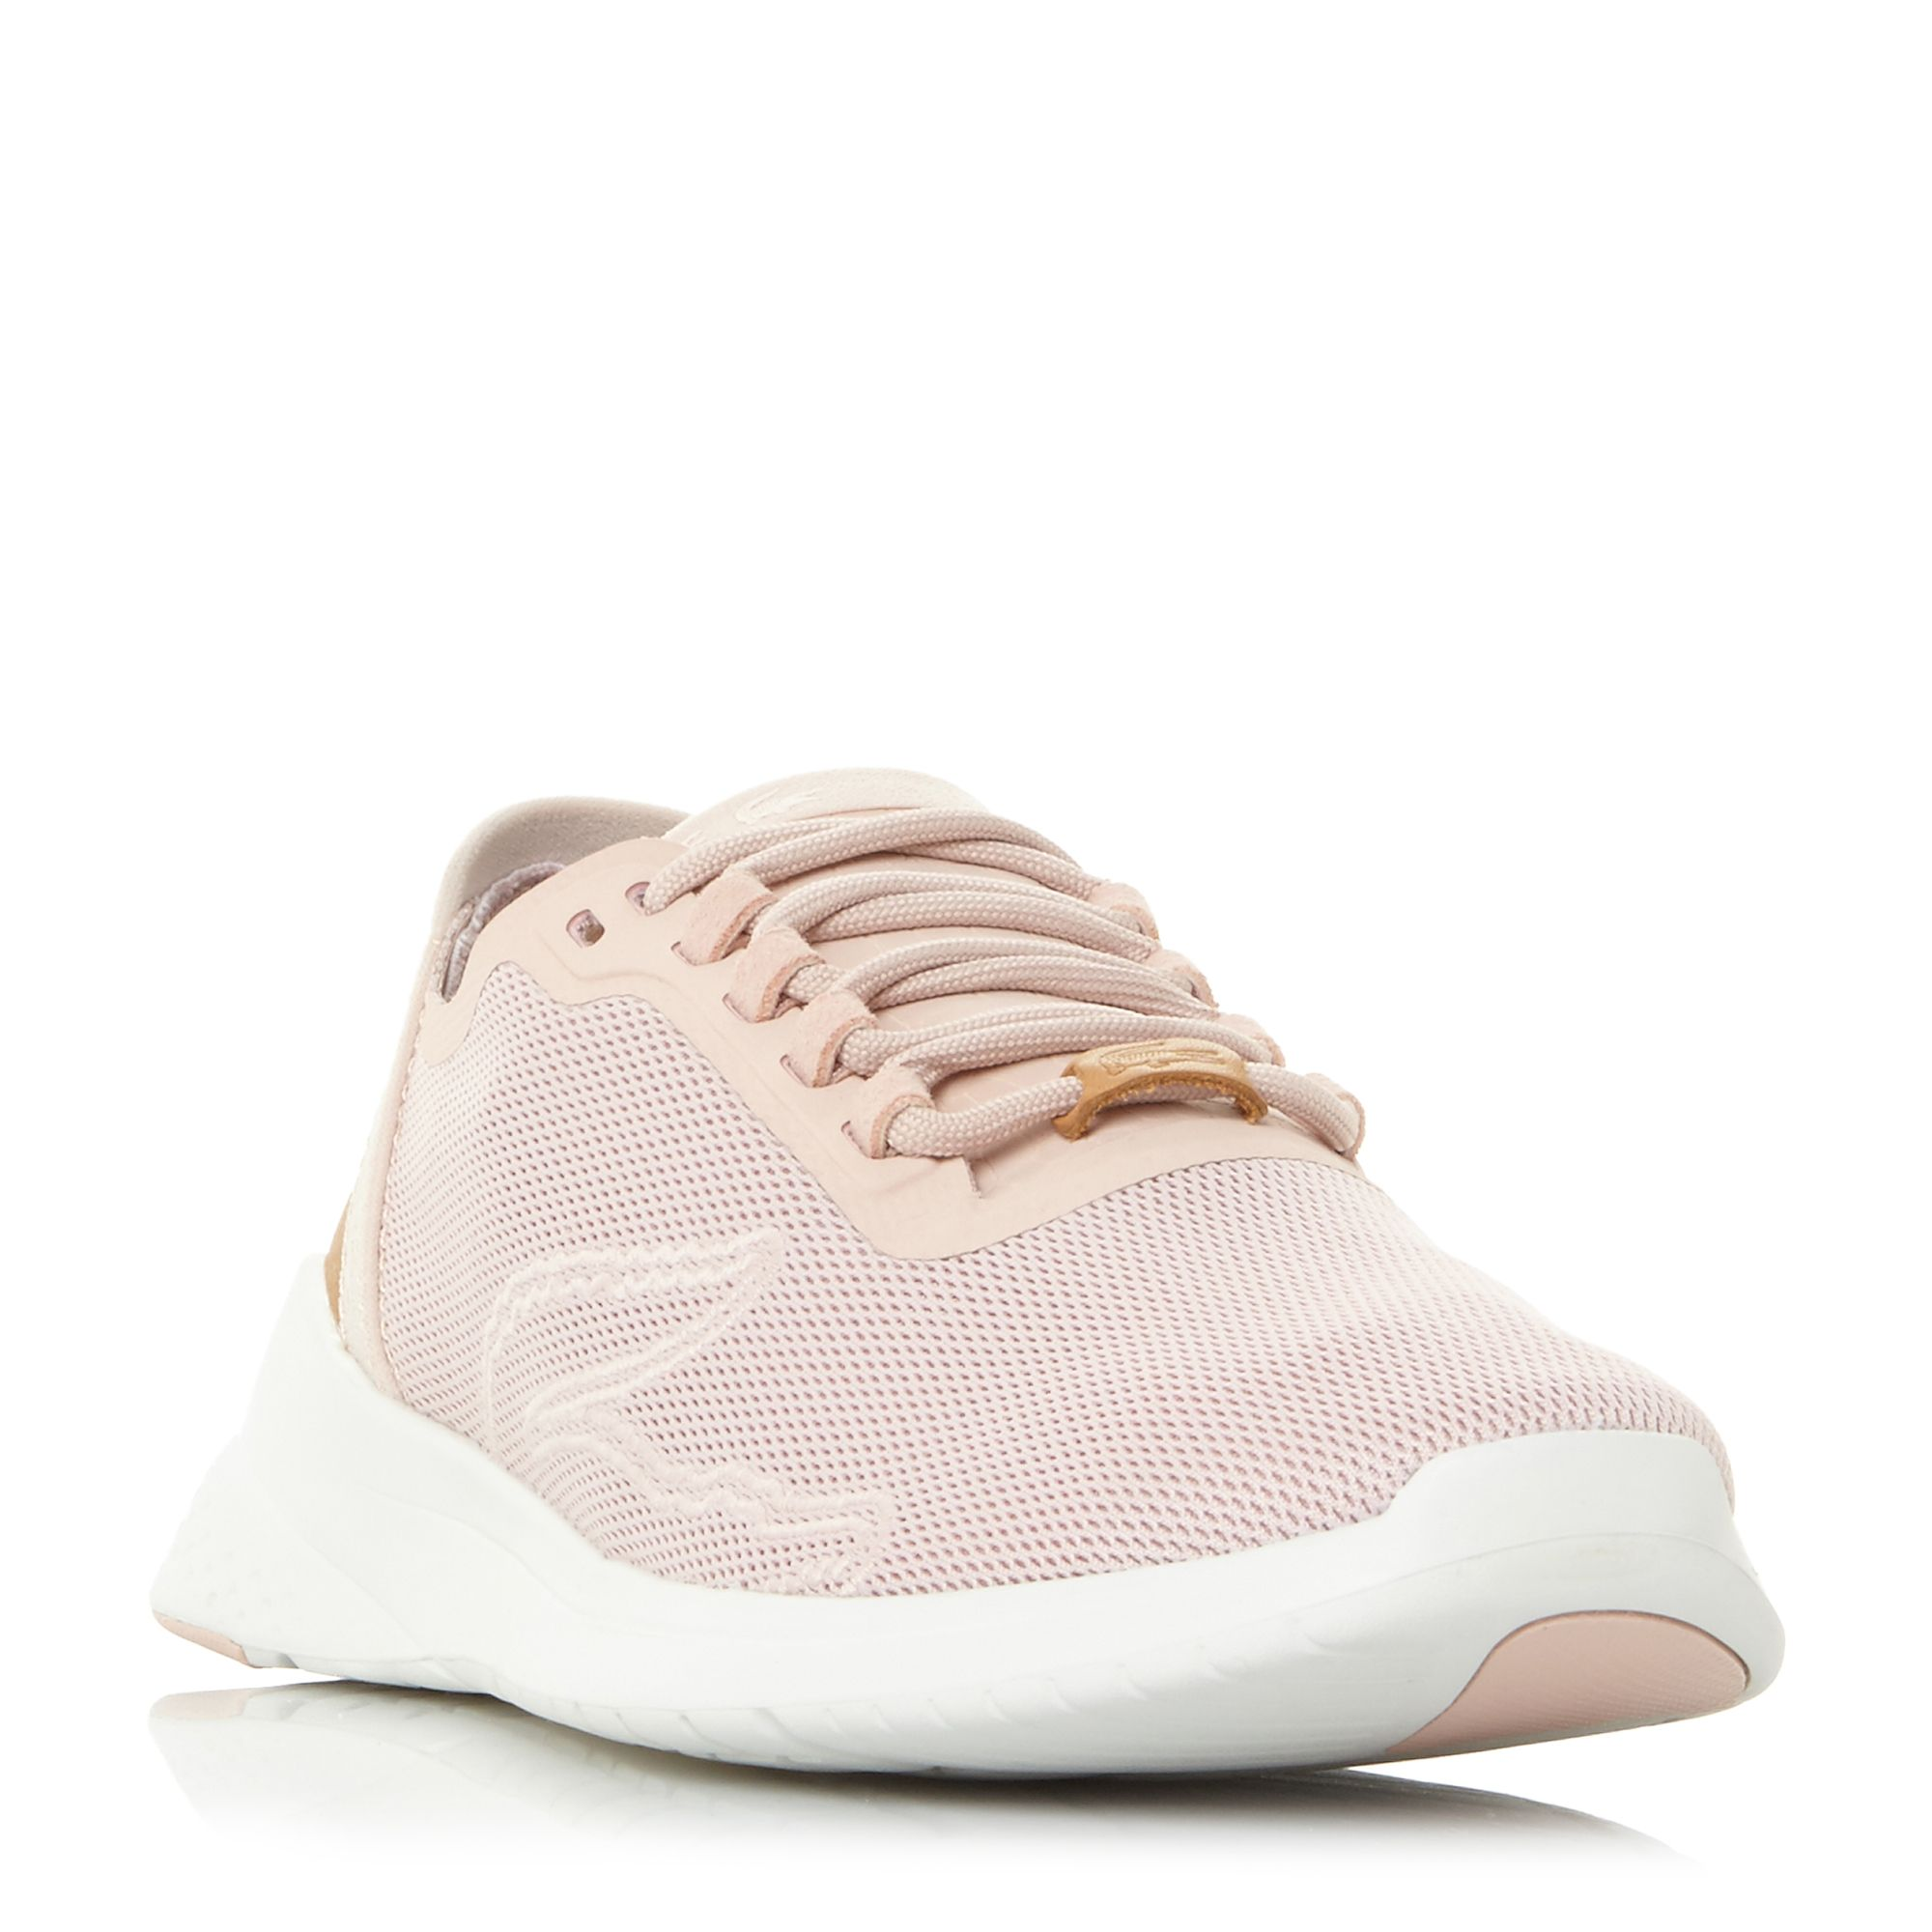 Lacoste Lt Fit 118 2 Knitted Trainers, Pink